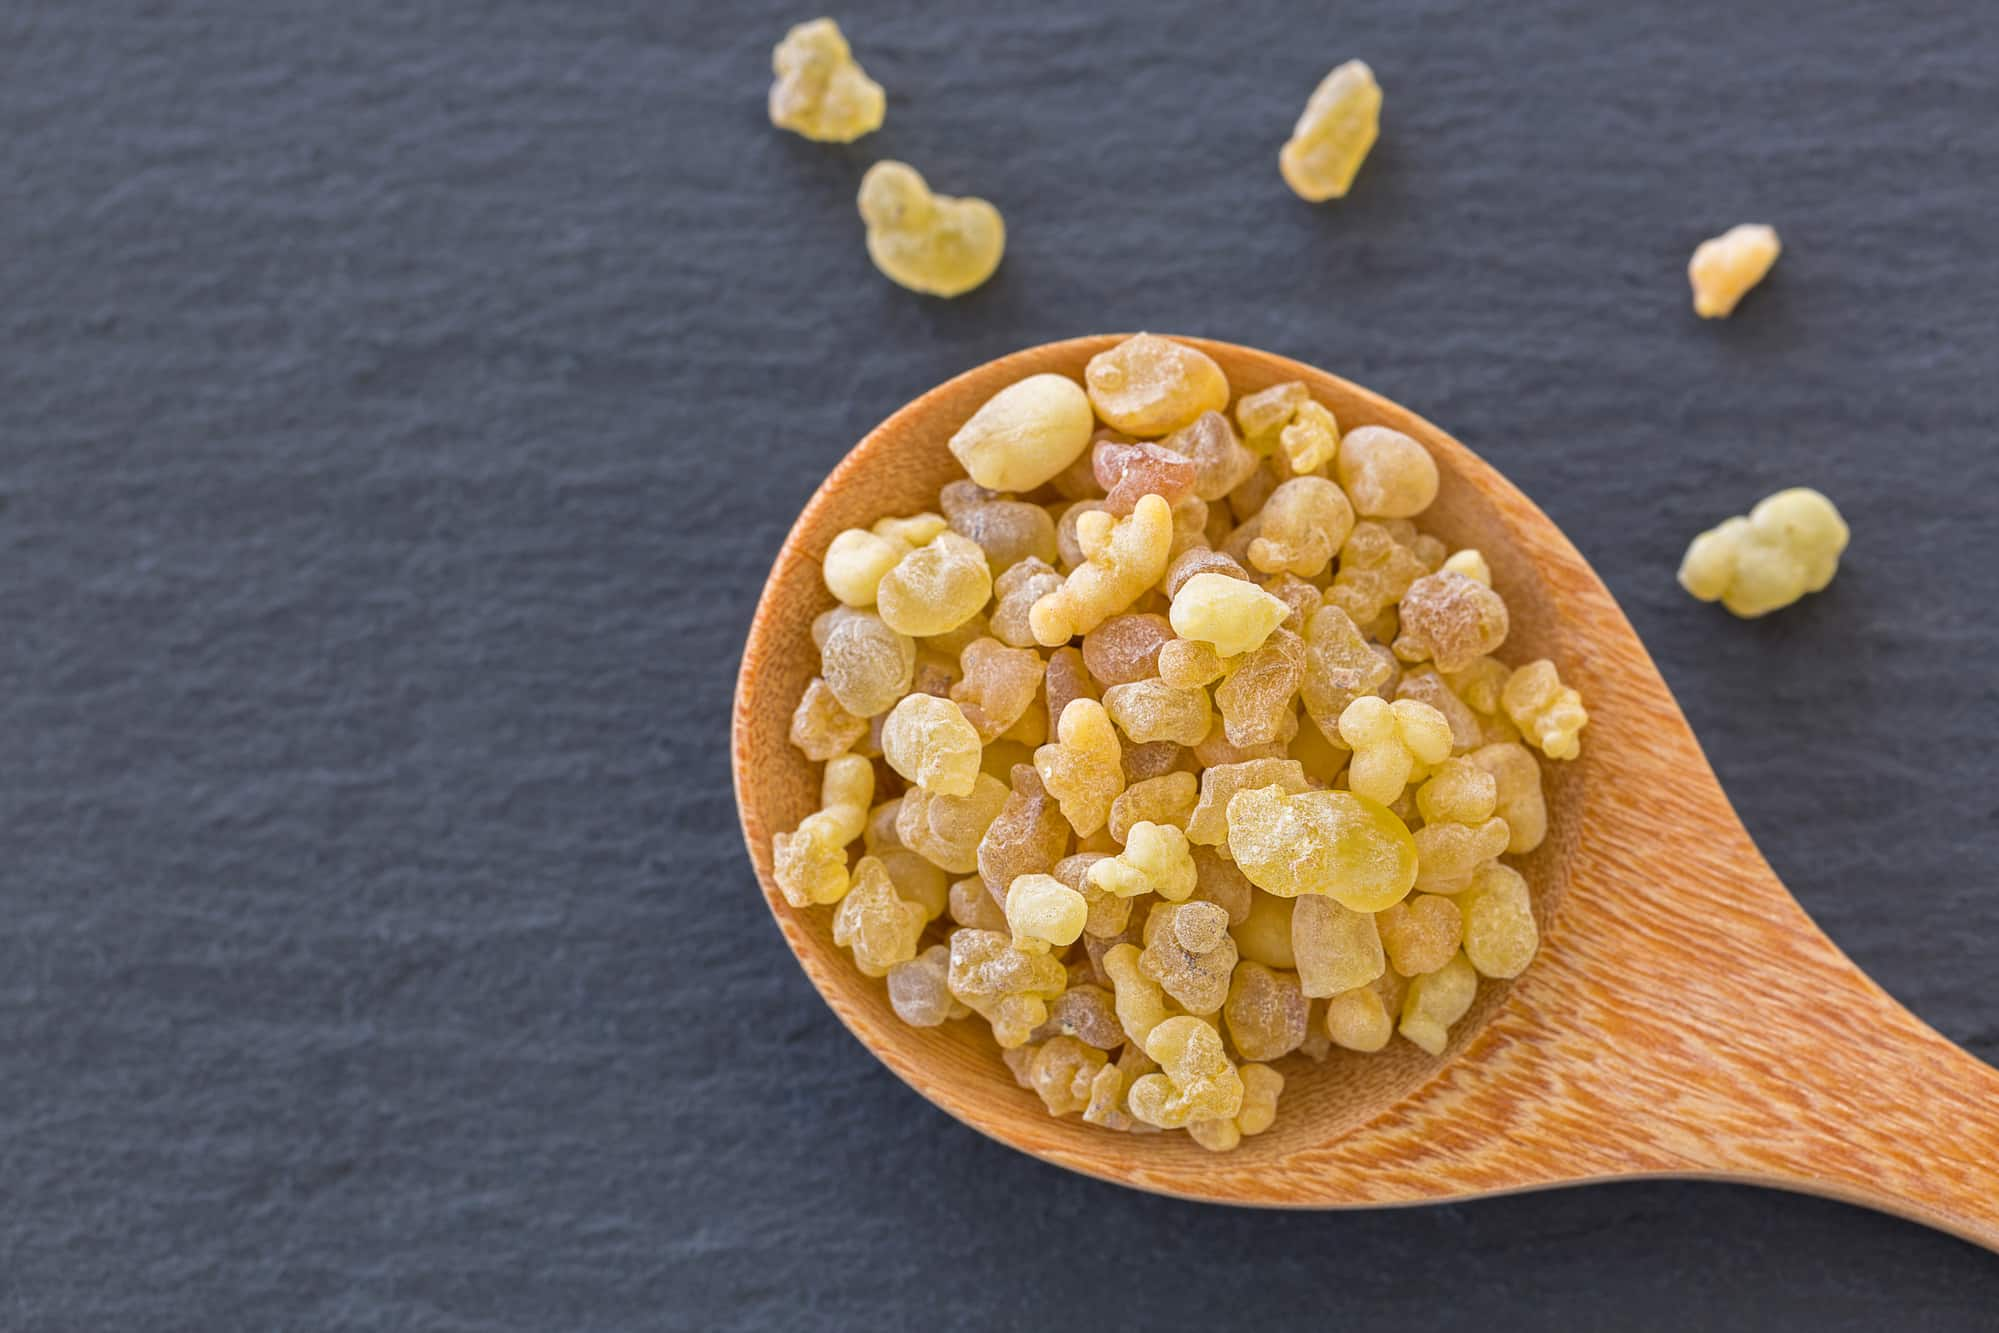 Frankincense: A Famous Aromatic Resin